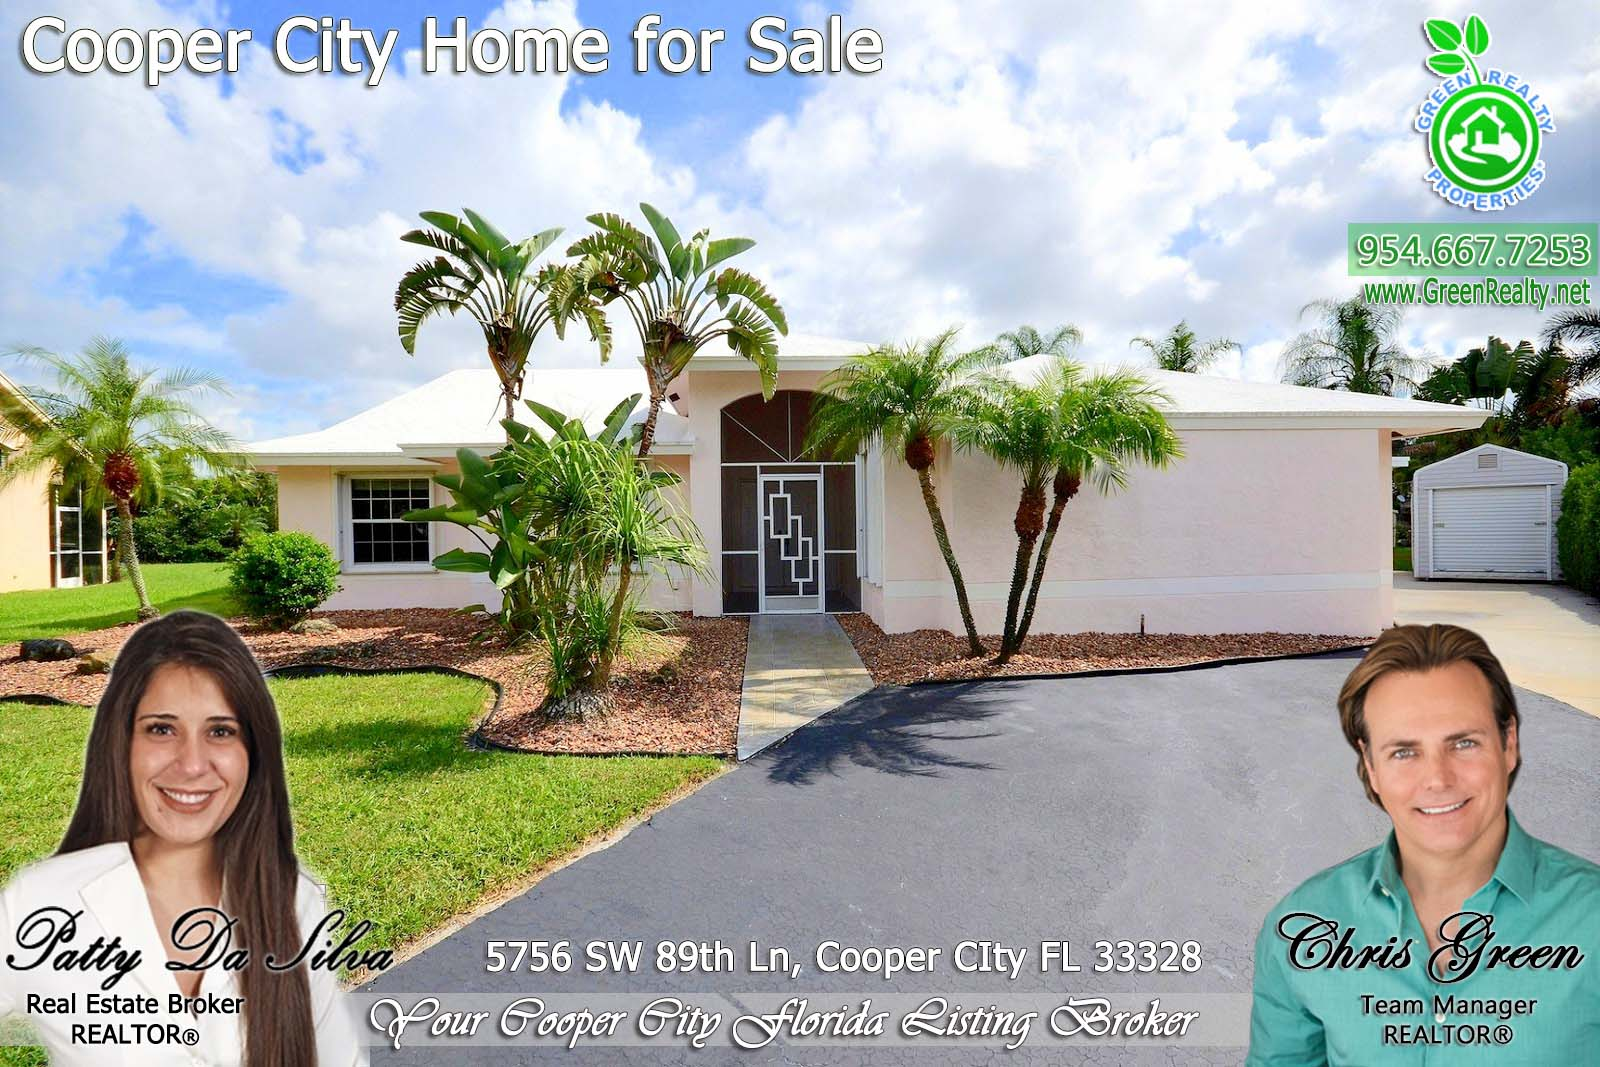 Coopers Pointe - Cooper City Florida Homes For Sale - Patty Da Silva SELLS Cooper City Homes